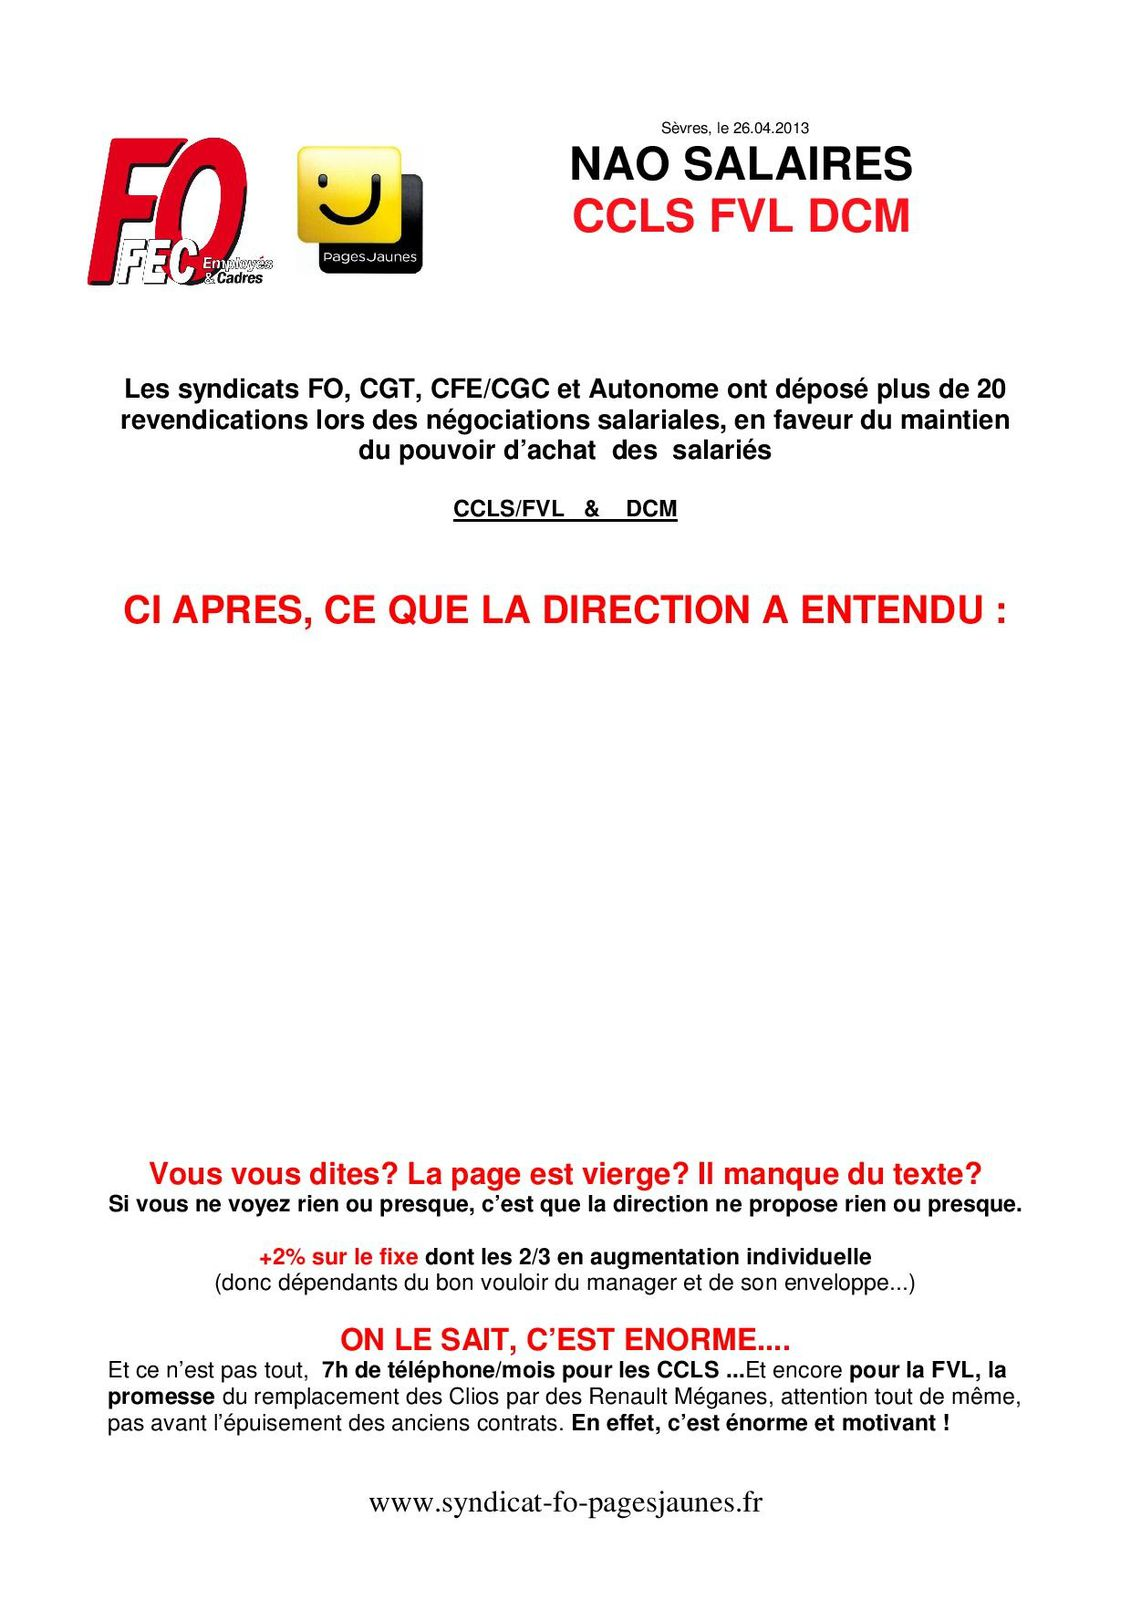 Tract NAO Salaires 2013 CCLS FVL DCM-page-001-1